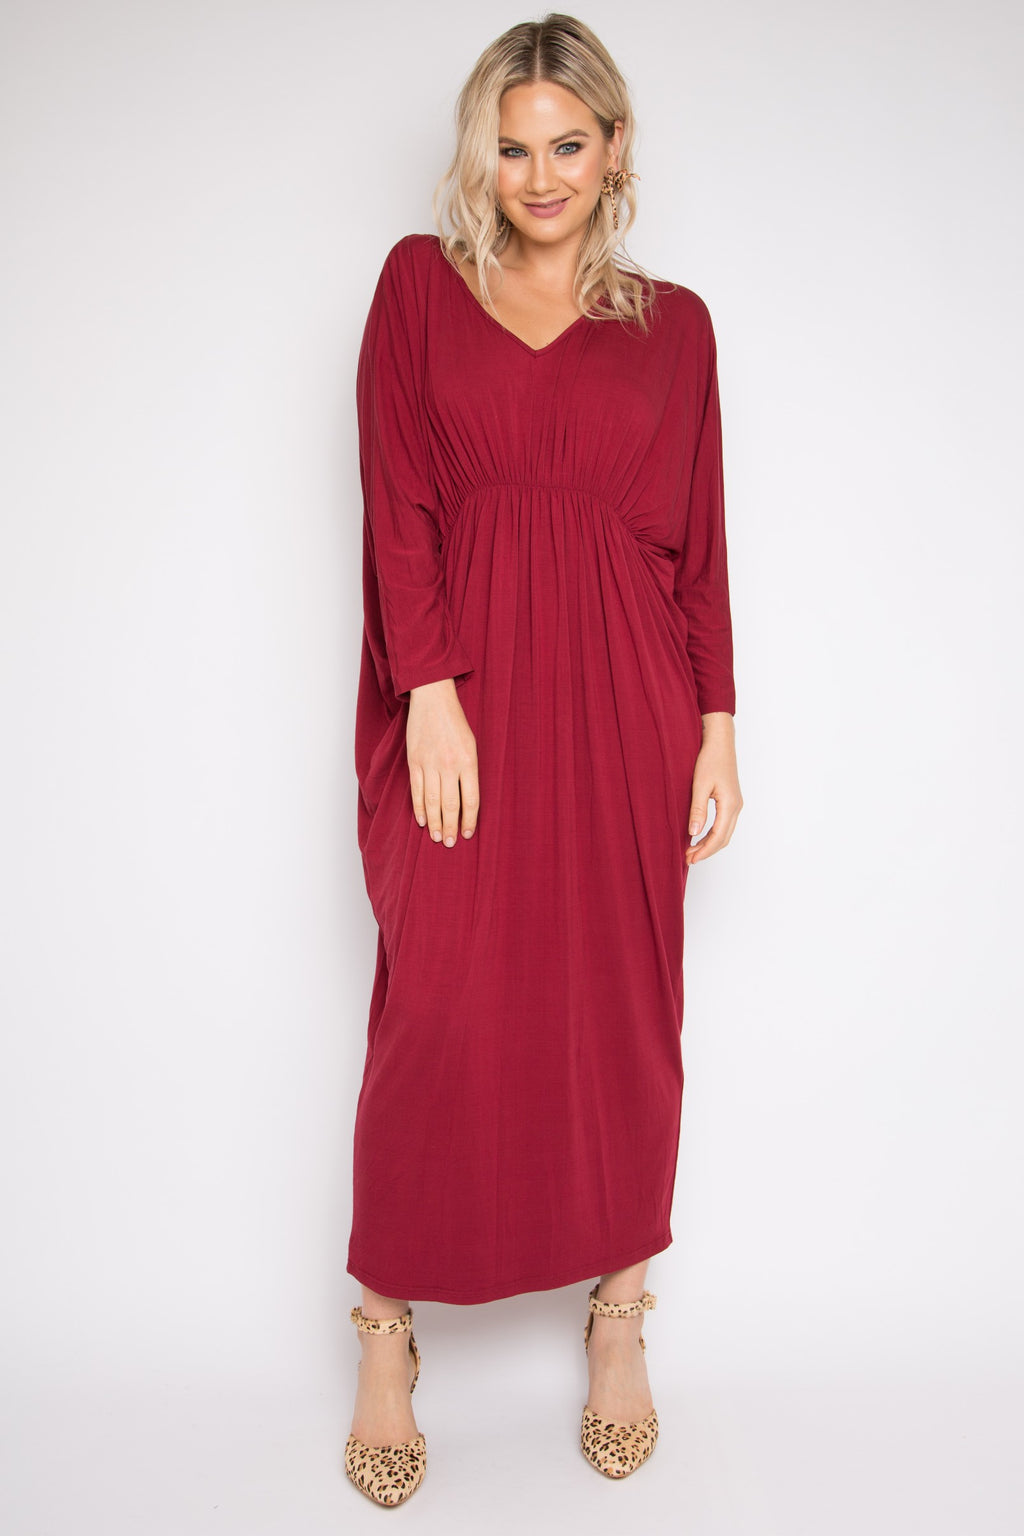 Bamboo Gathered Long Sleeve Maxi Miracle Dress in Black Cherry